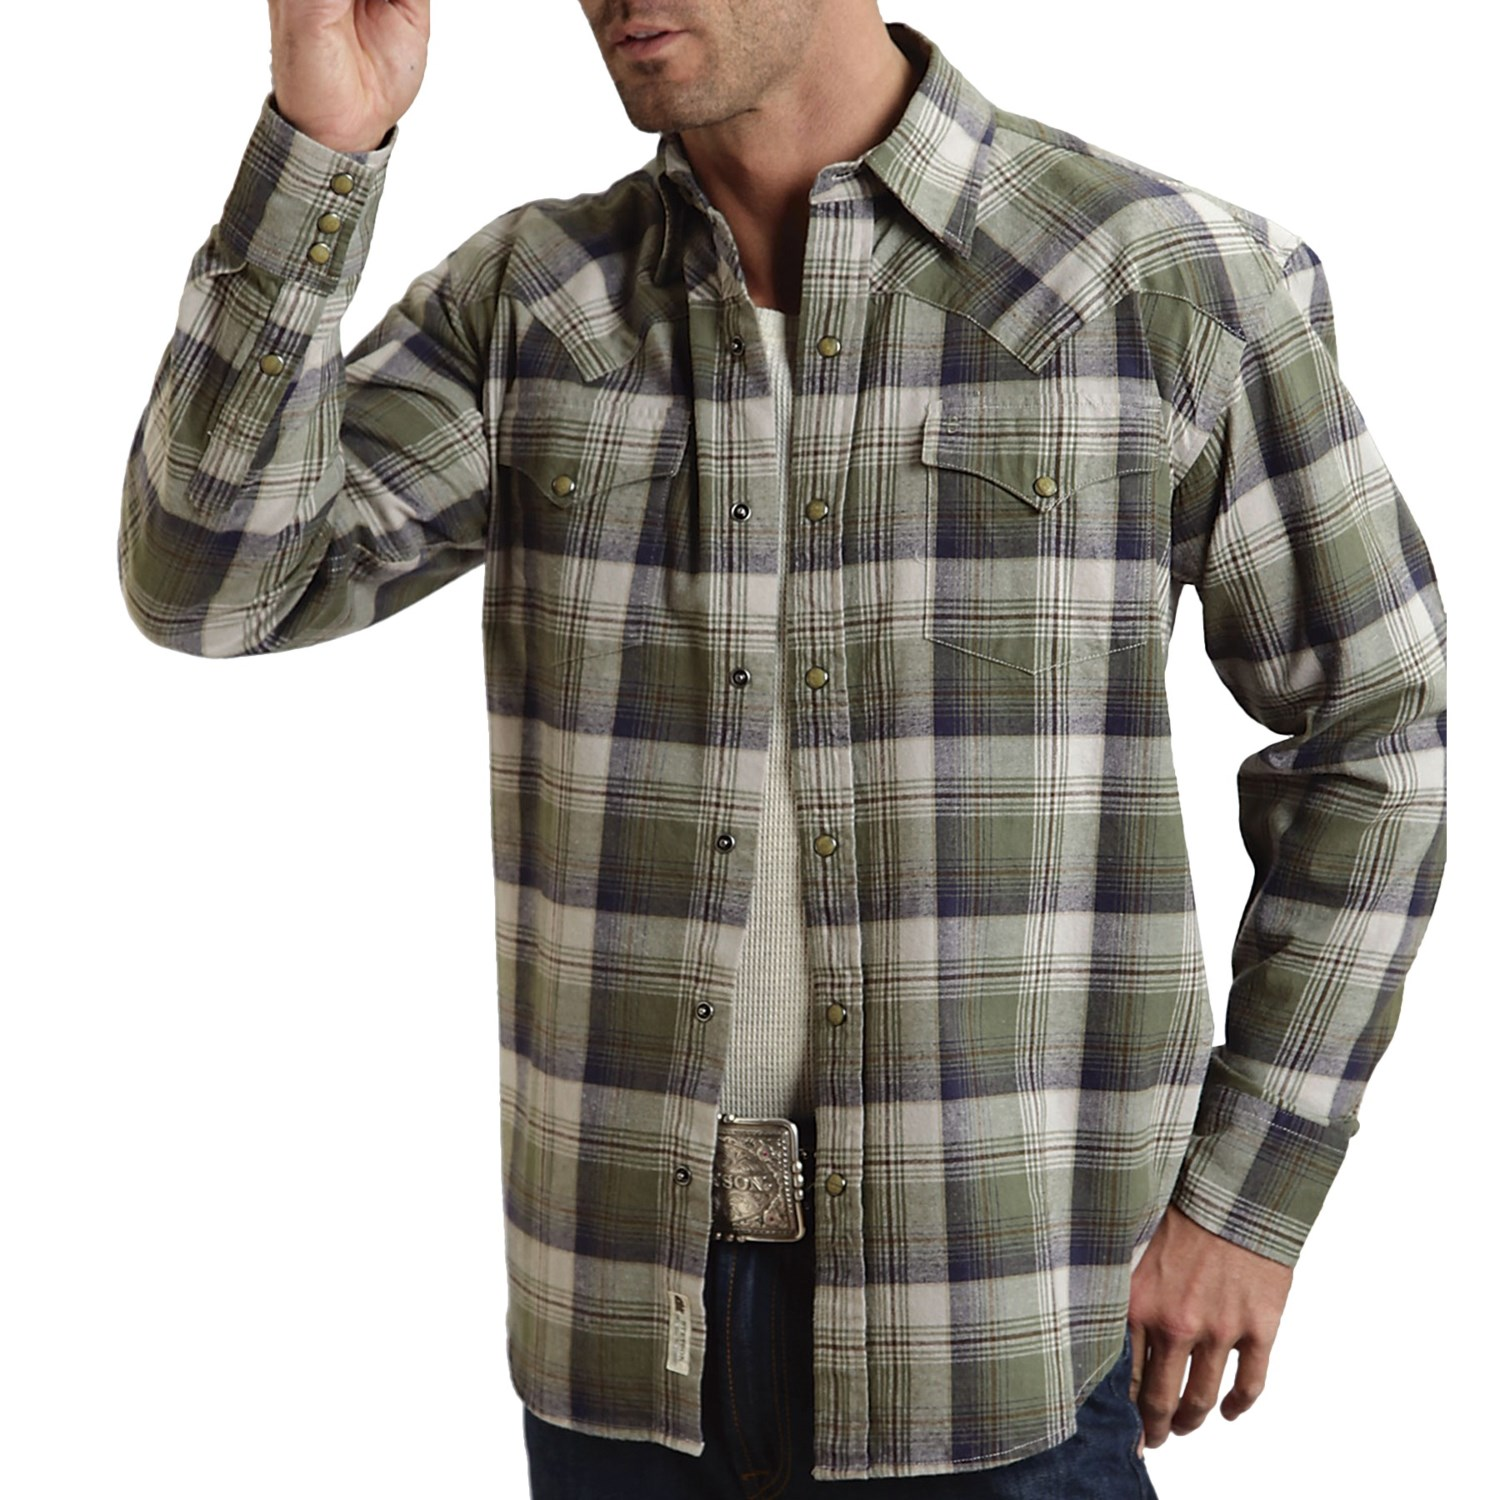 Bust axe in our Men's Free Swingin' flannel shirts, packed with features and comfort for any job. Only at Duluth Trading Company. Dark Gray Plaid. Men's Burlyweight Flannel Shirt $ $ - $ New Colors. Compare Men's Burlyweight Flannel Shirt QuickView.